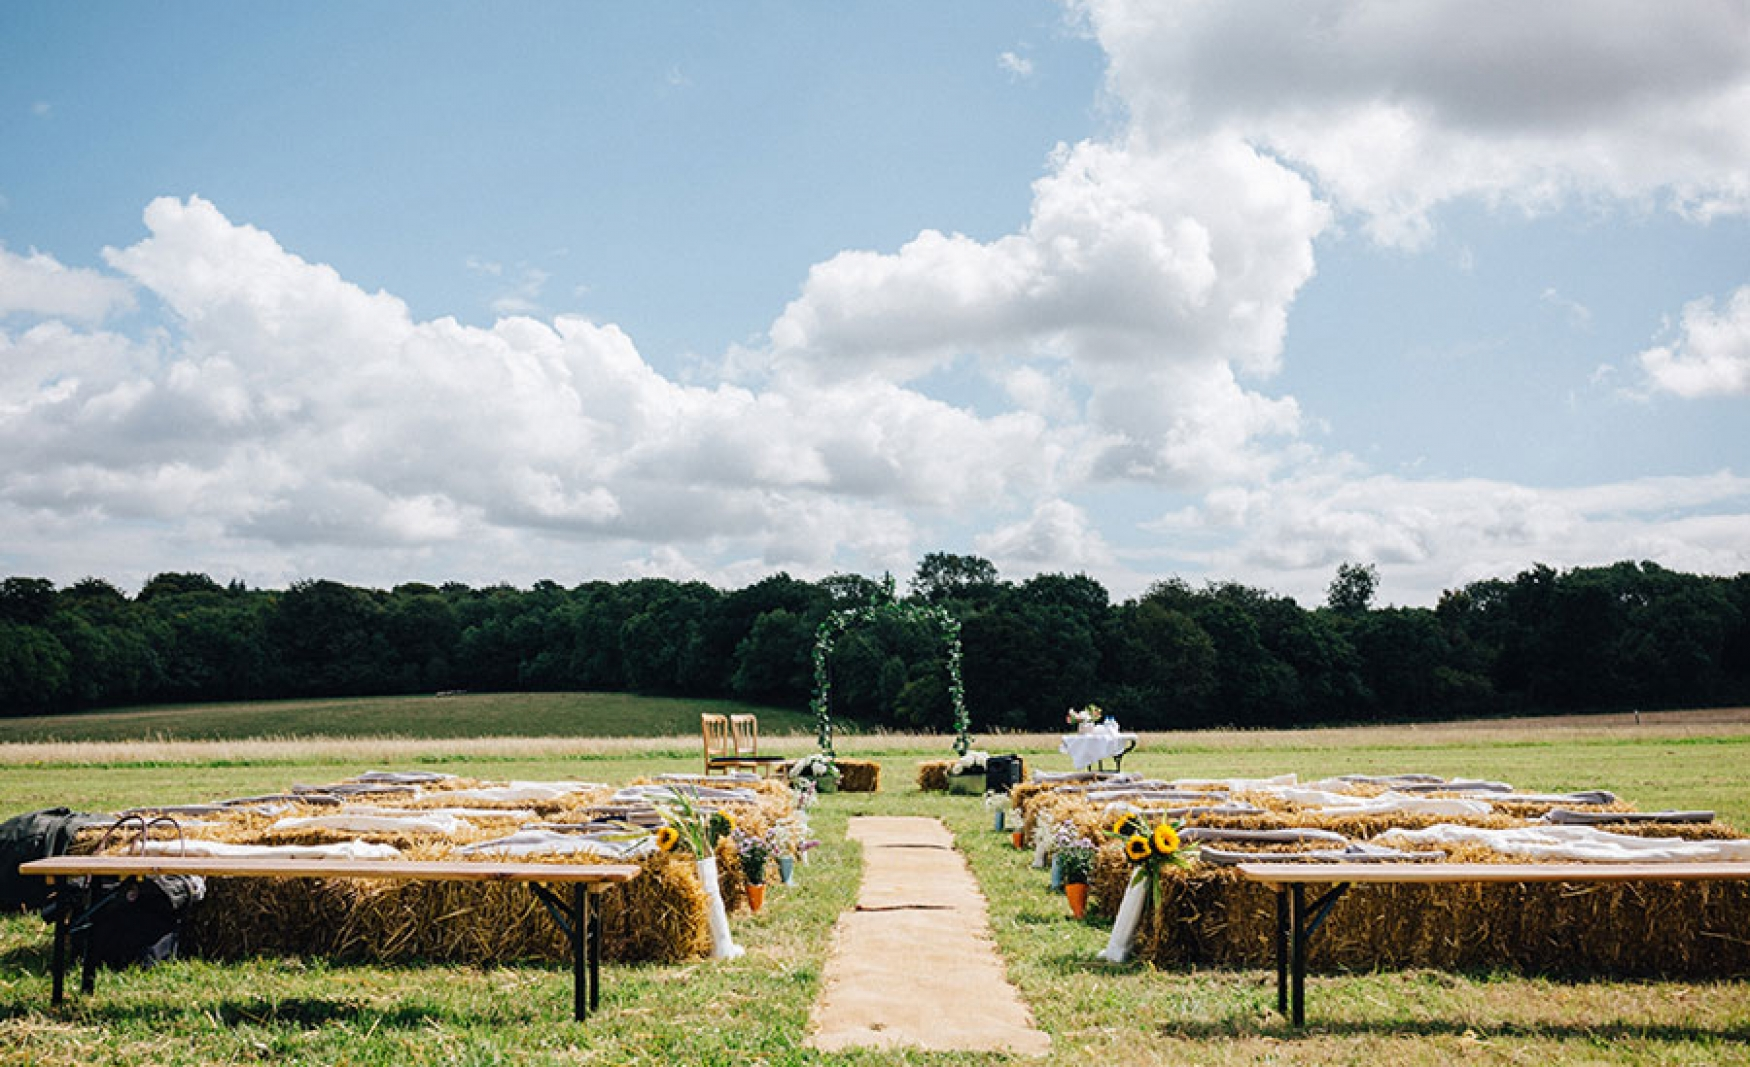 fiesta-fields-outdoor-wedding-events-company-tipi-surrey-sussex-phoenice-fields-leatherhead-6